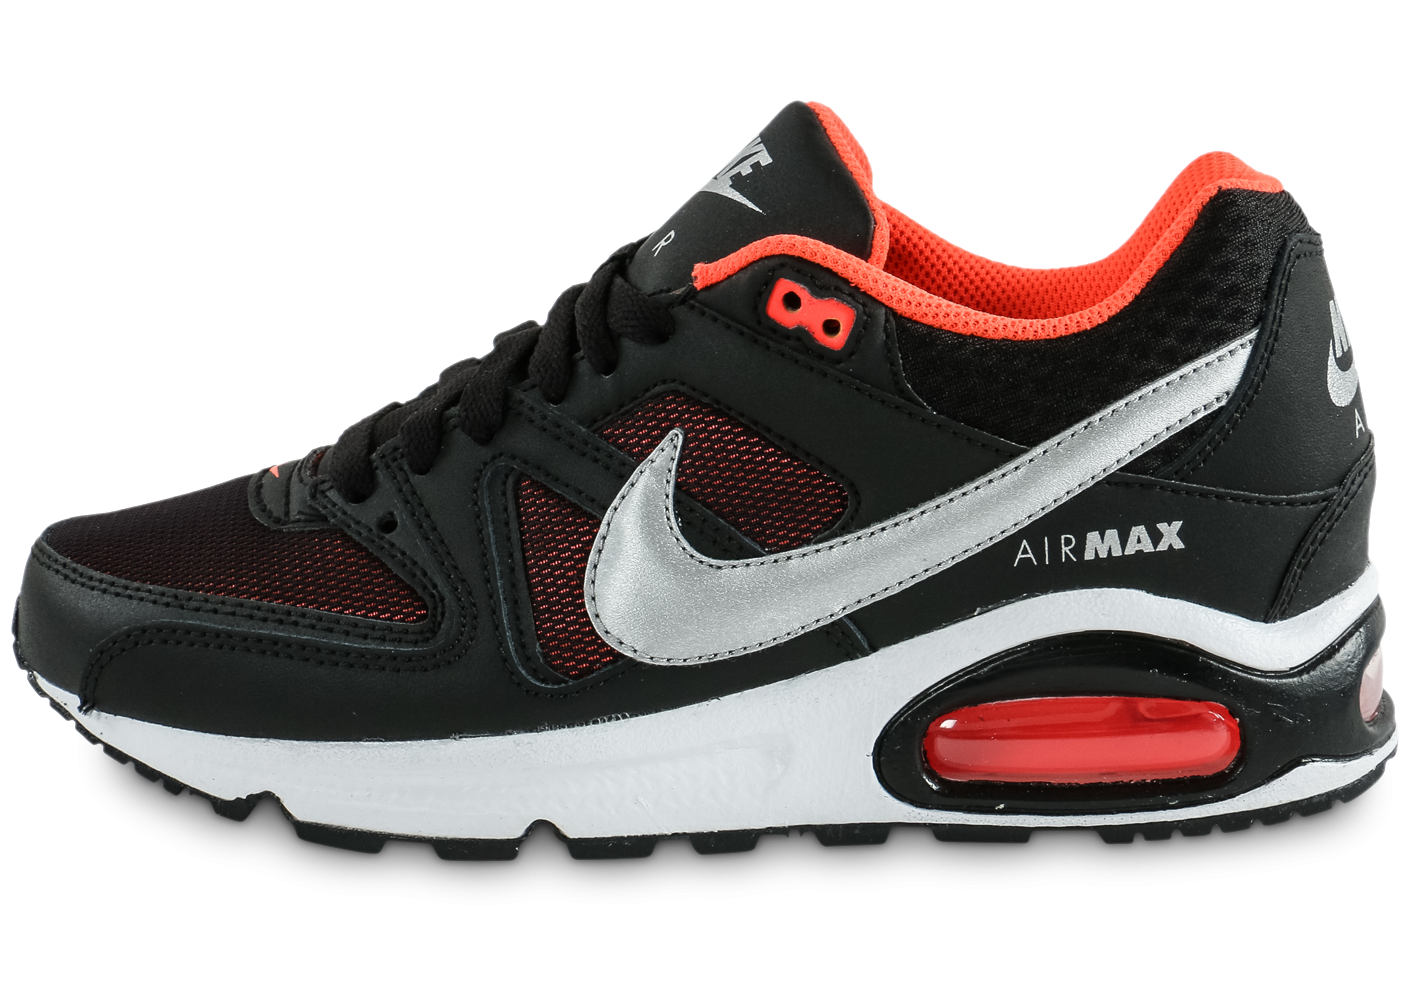 new style 6ee86 53bb8 Acheter Nike Air Max Command Femme Chaussures JDcommand24